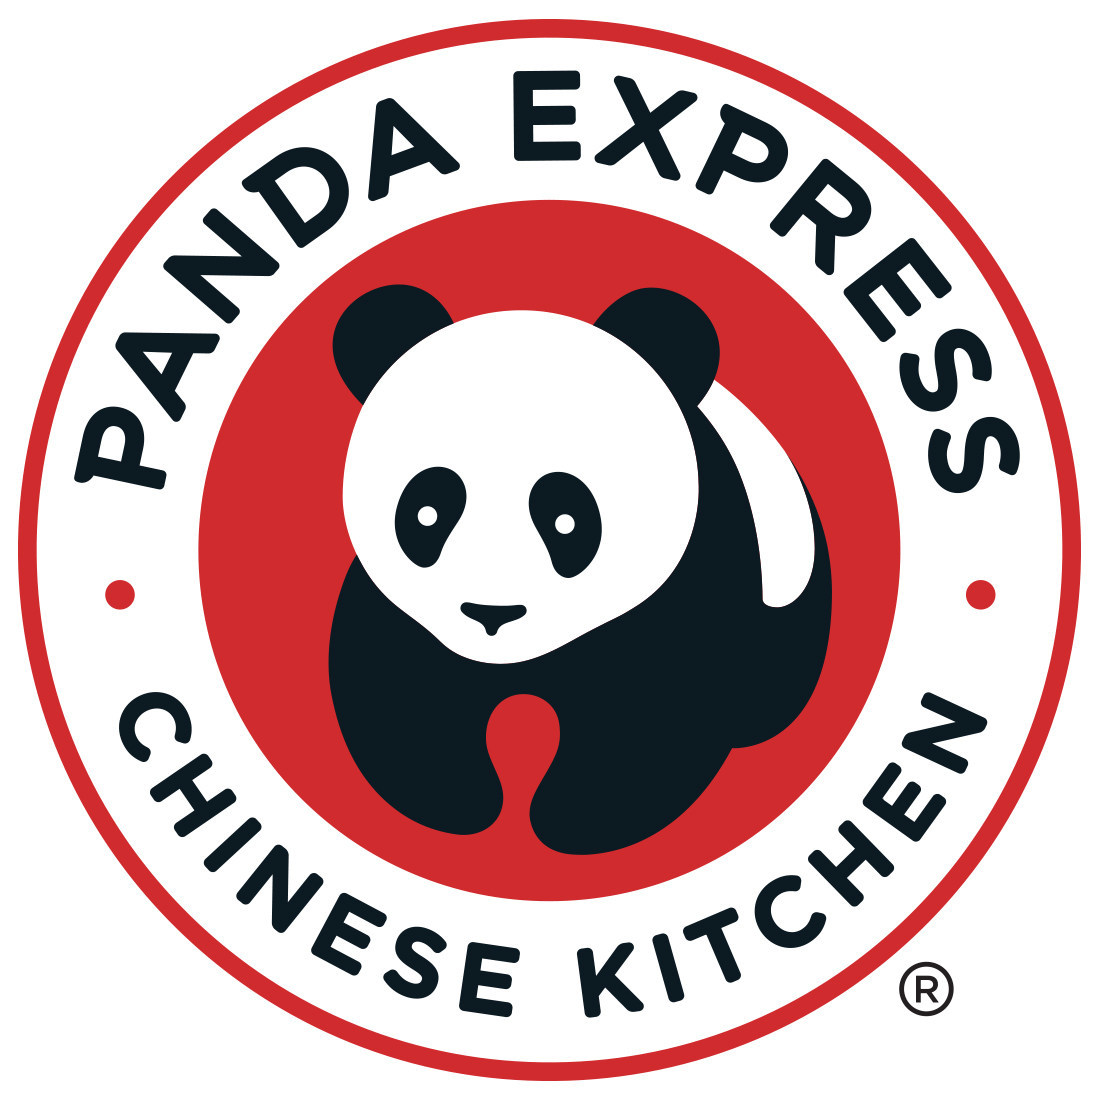 Panda Express Introduces Five Flavor Shrimp To Wok Smart Menu Lineup